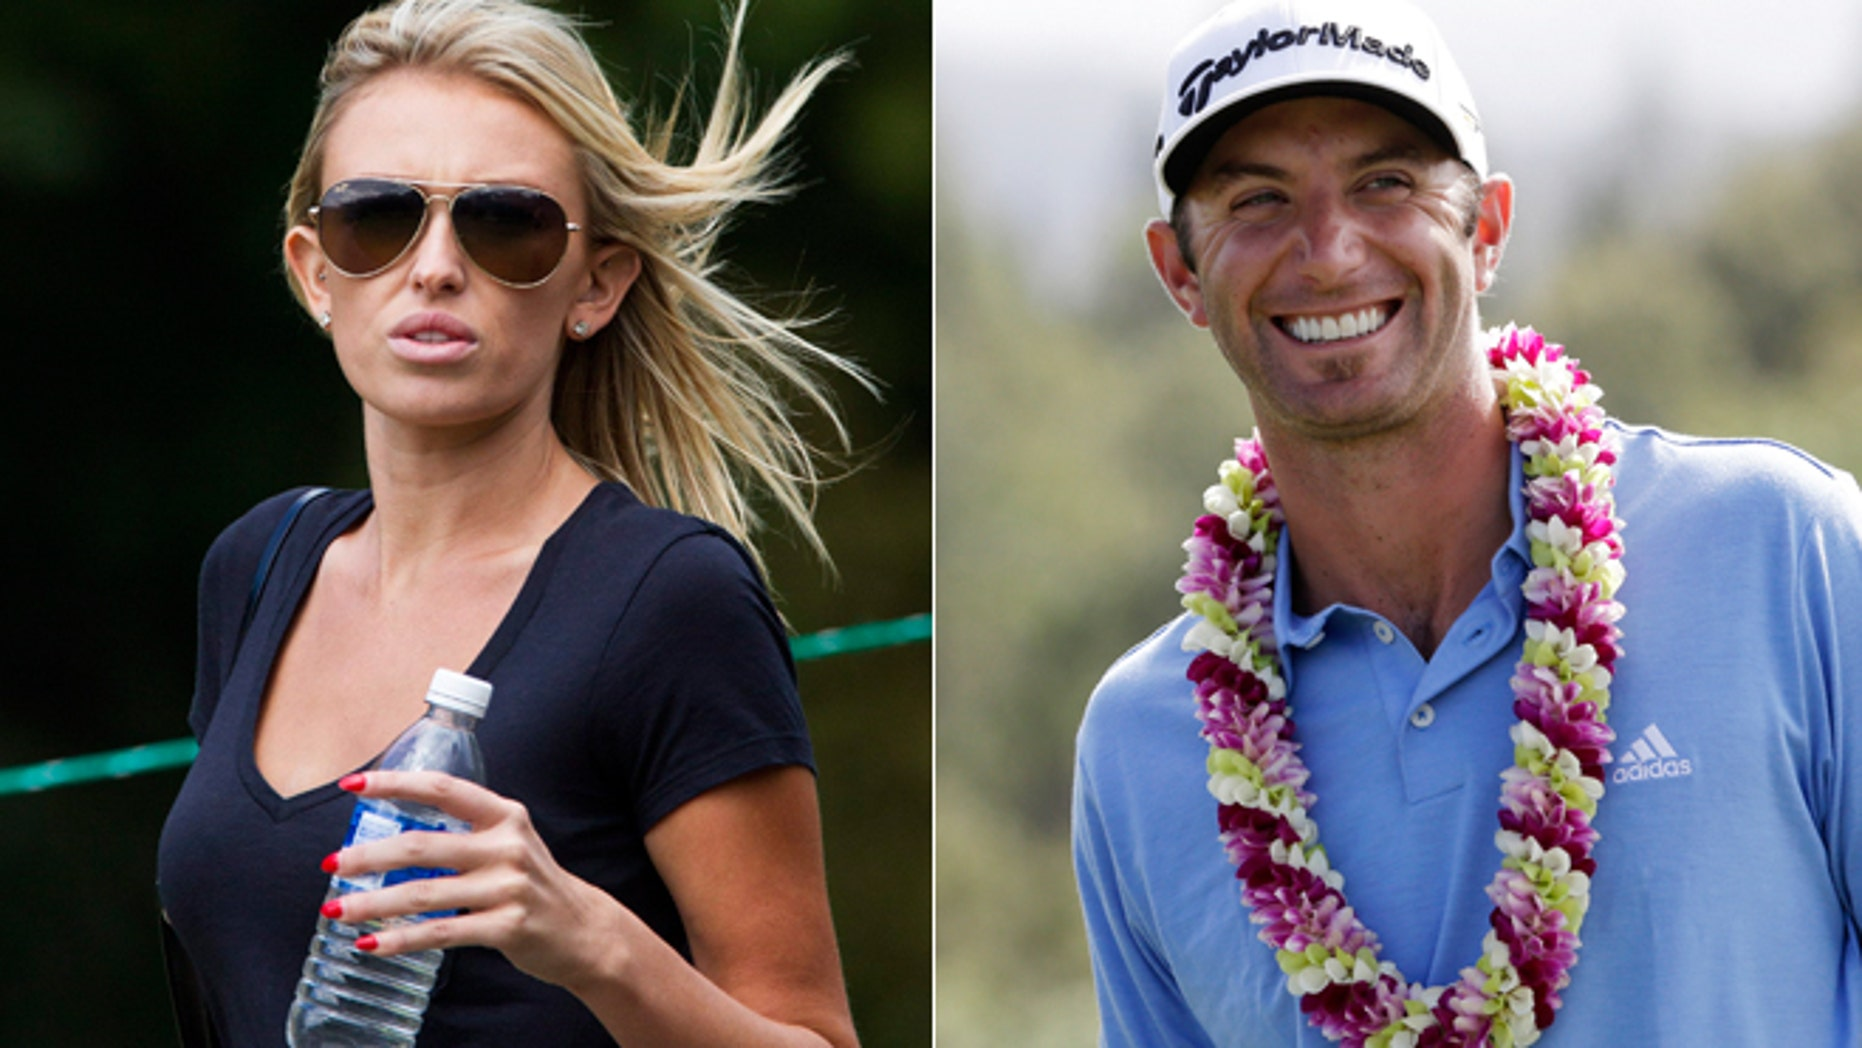 Paulina Gretzky, left, and Dustin Johnson have taken to Twitter to say they're getting married.